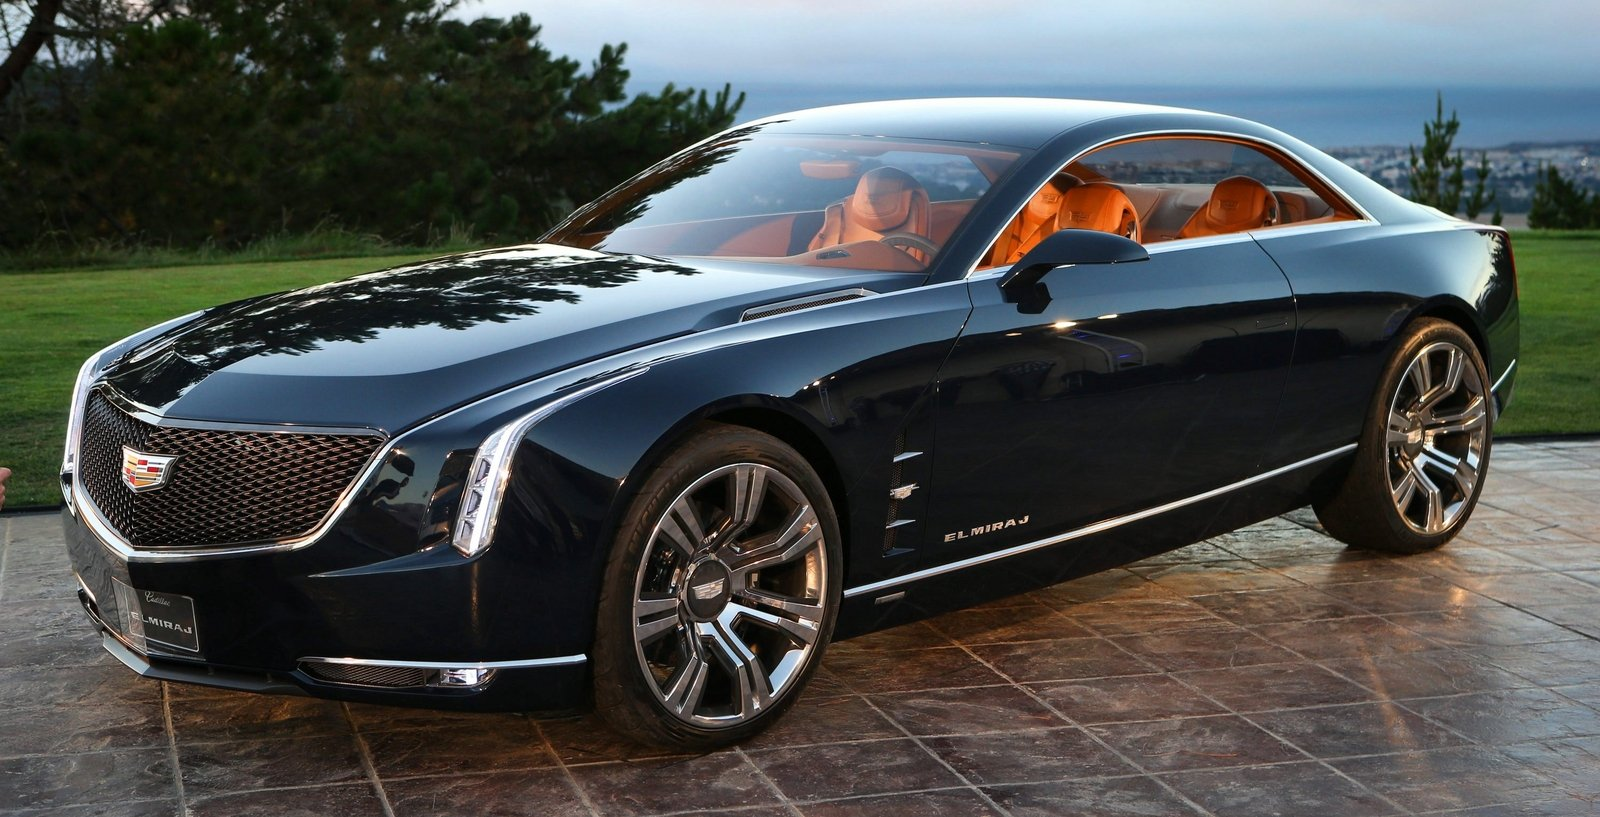 2016 cadillac ct6 picture 563684 car review top speed. Black Bedroom Furniture Sets. Home Design Ideas